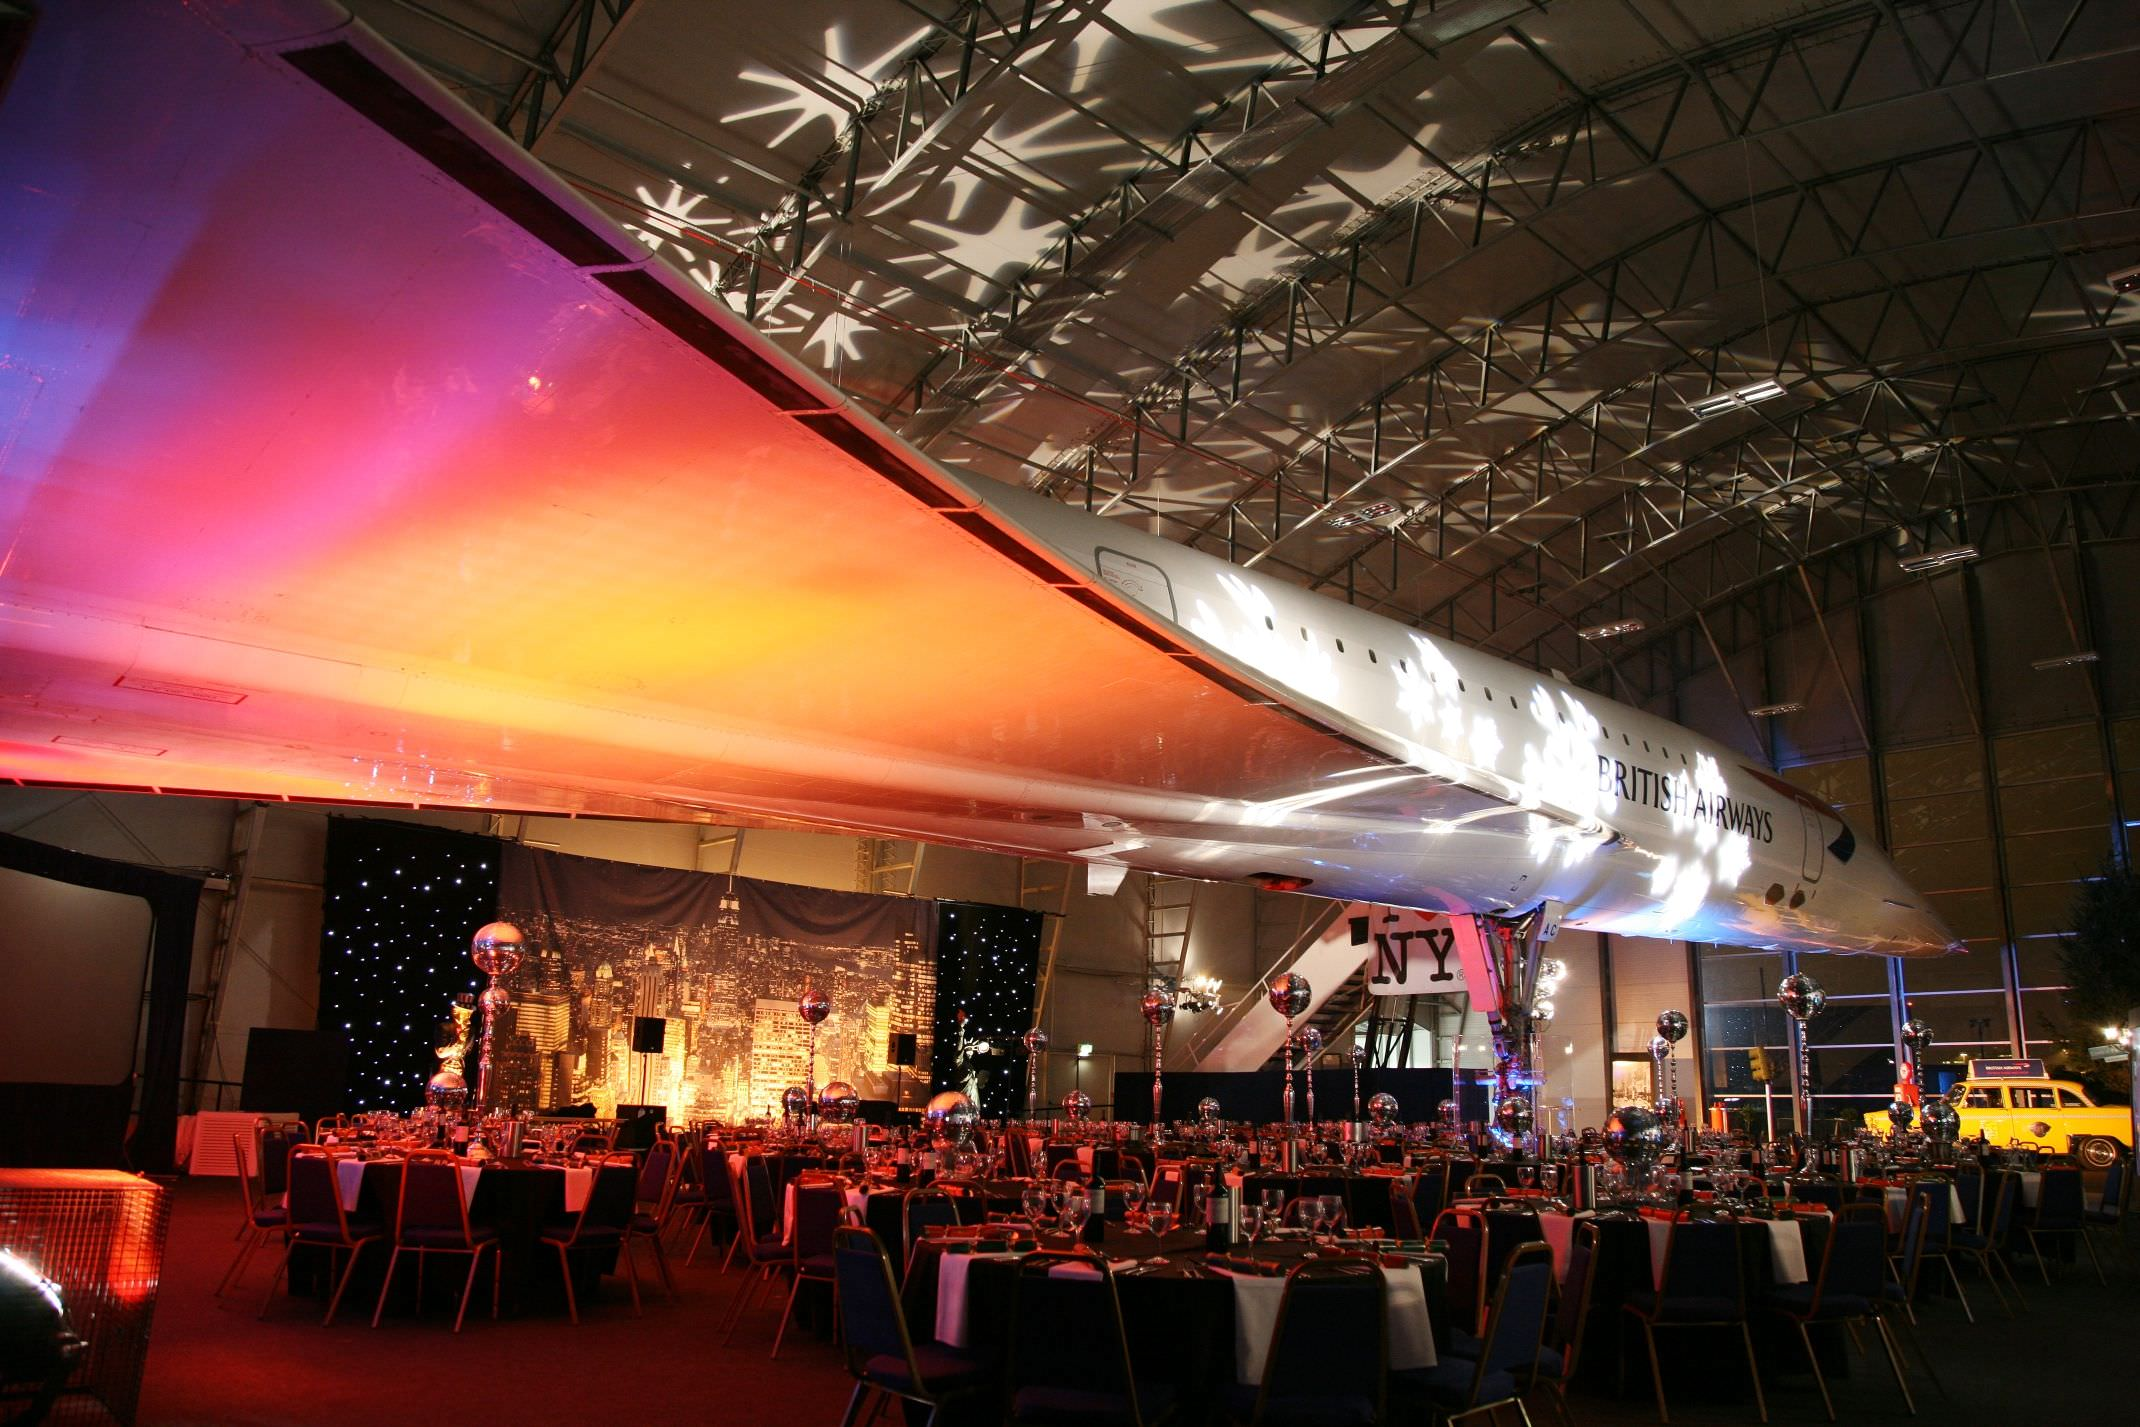 corporate event organisers - Concorde Christmas